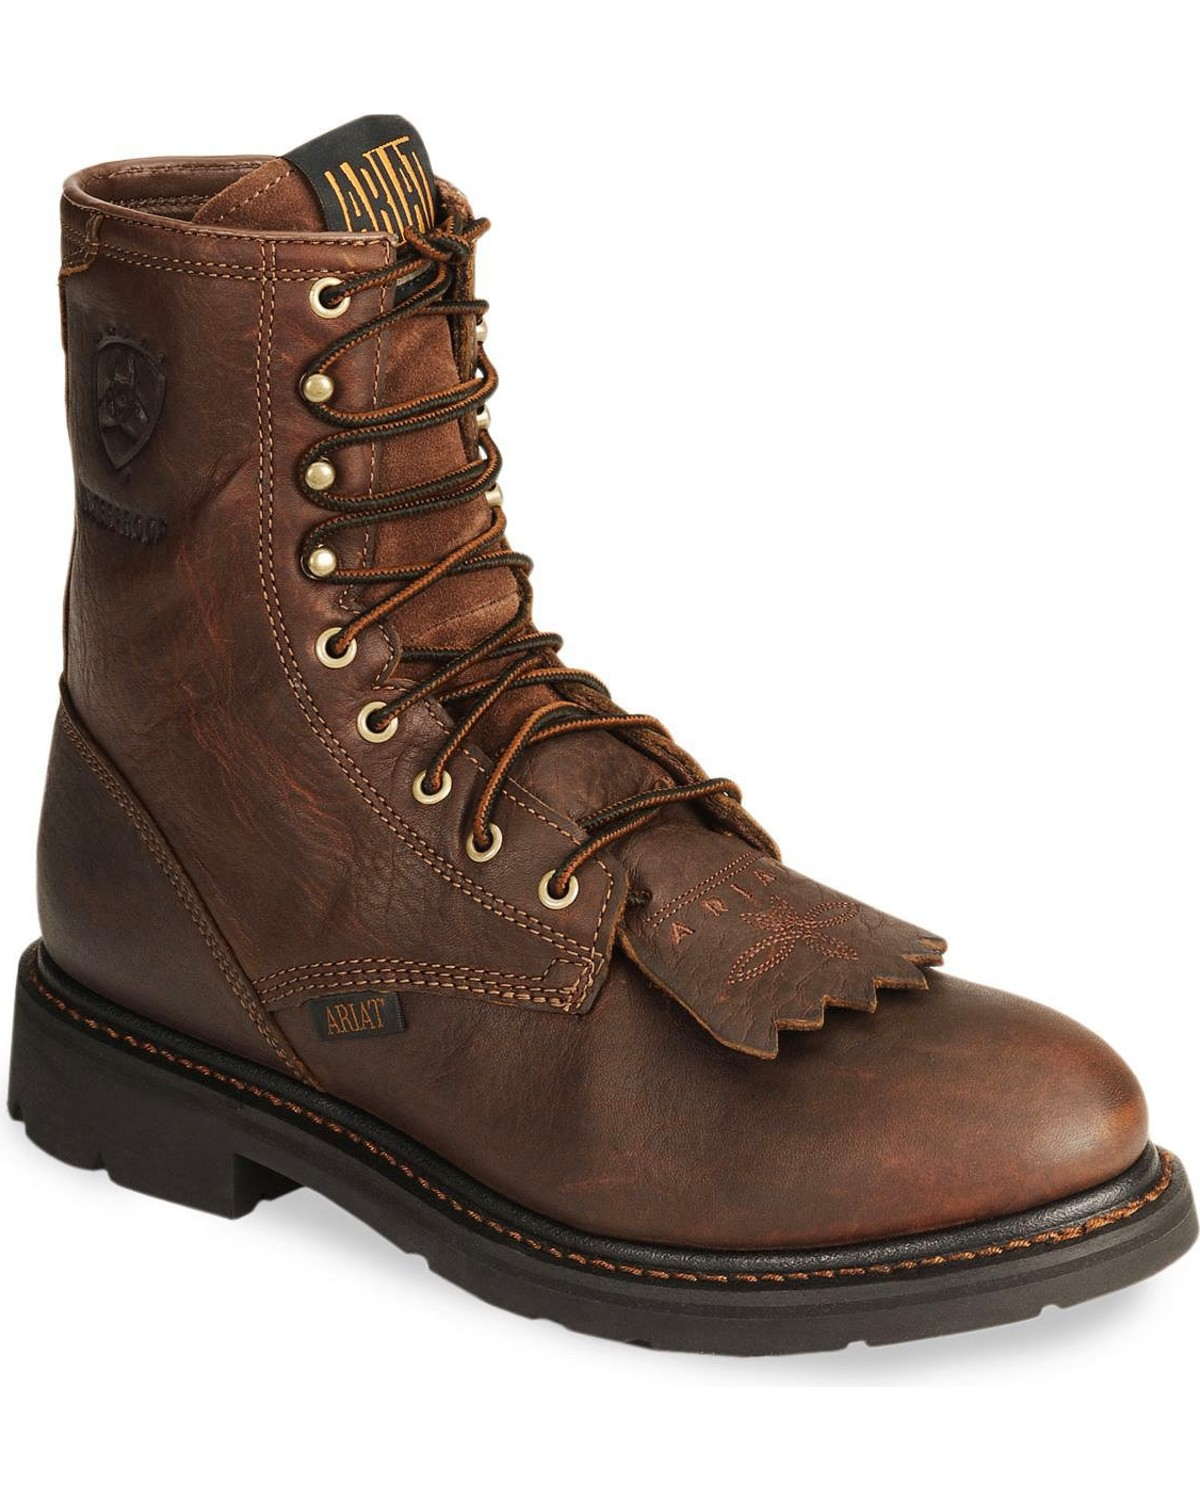 f60eefffb5a Ariat Men's Cascade Waterproof Work Boots